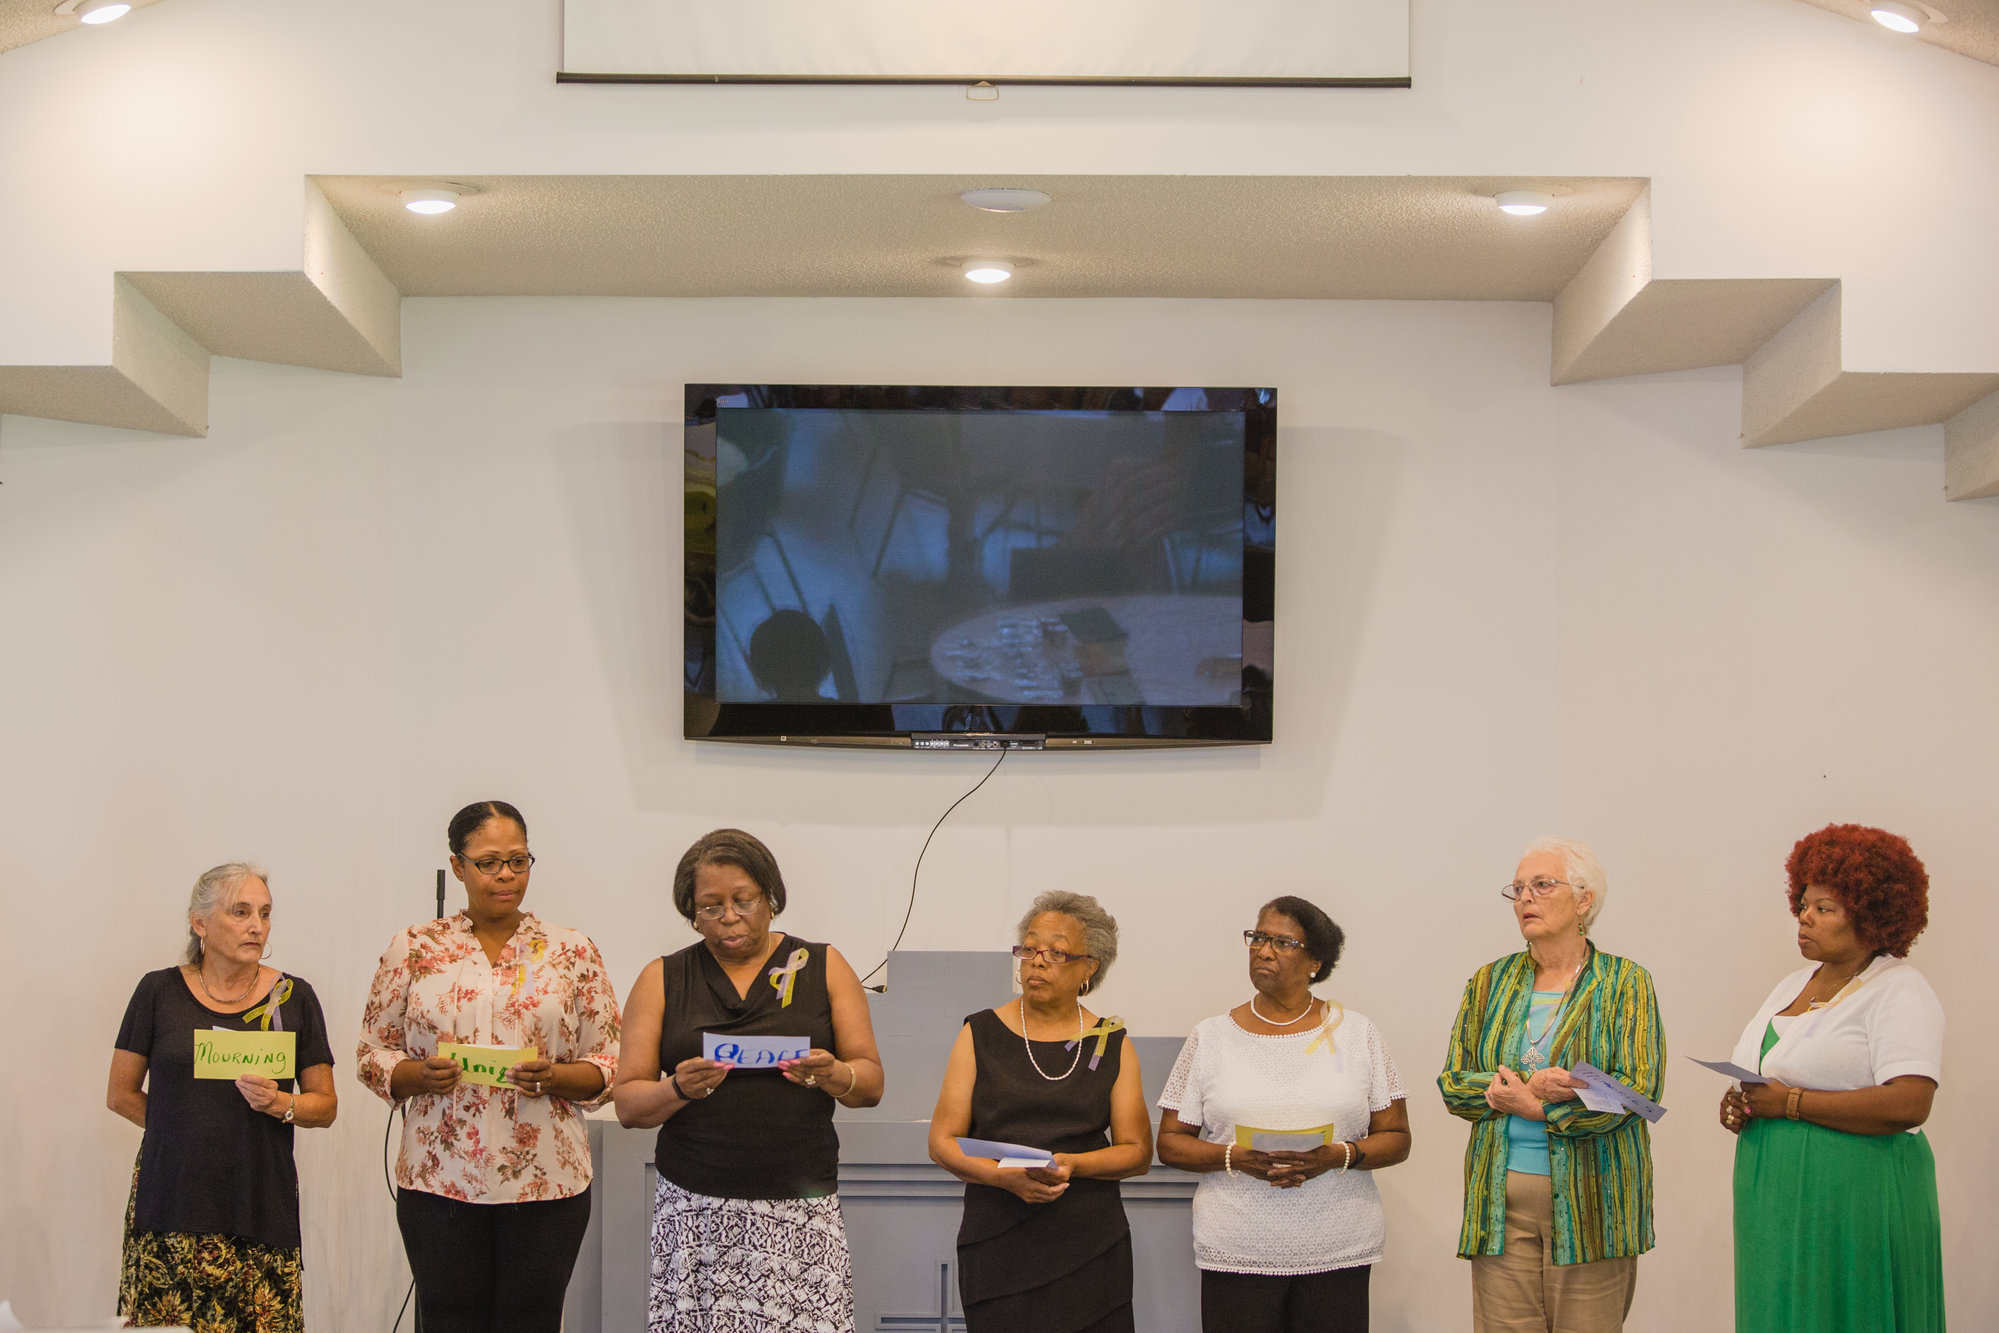 Mothers of Angels members sing a song during their annual luncheon at Wise Drive Baptist Church.